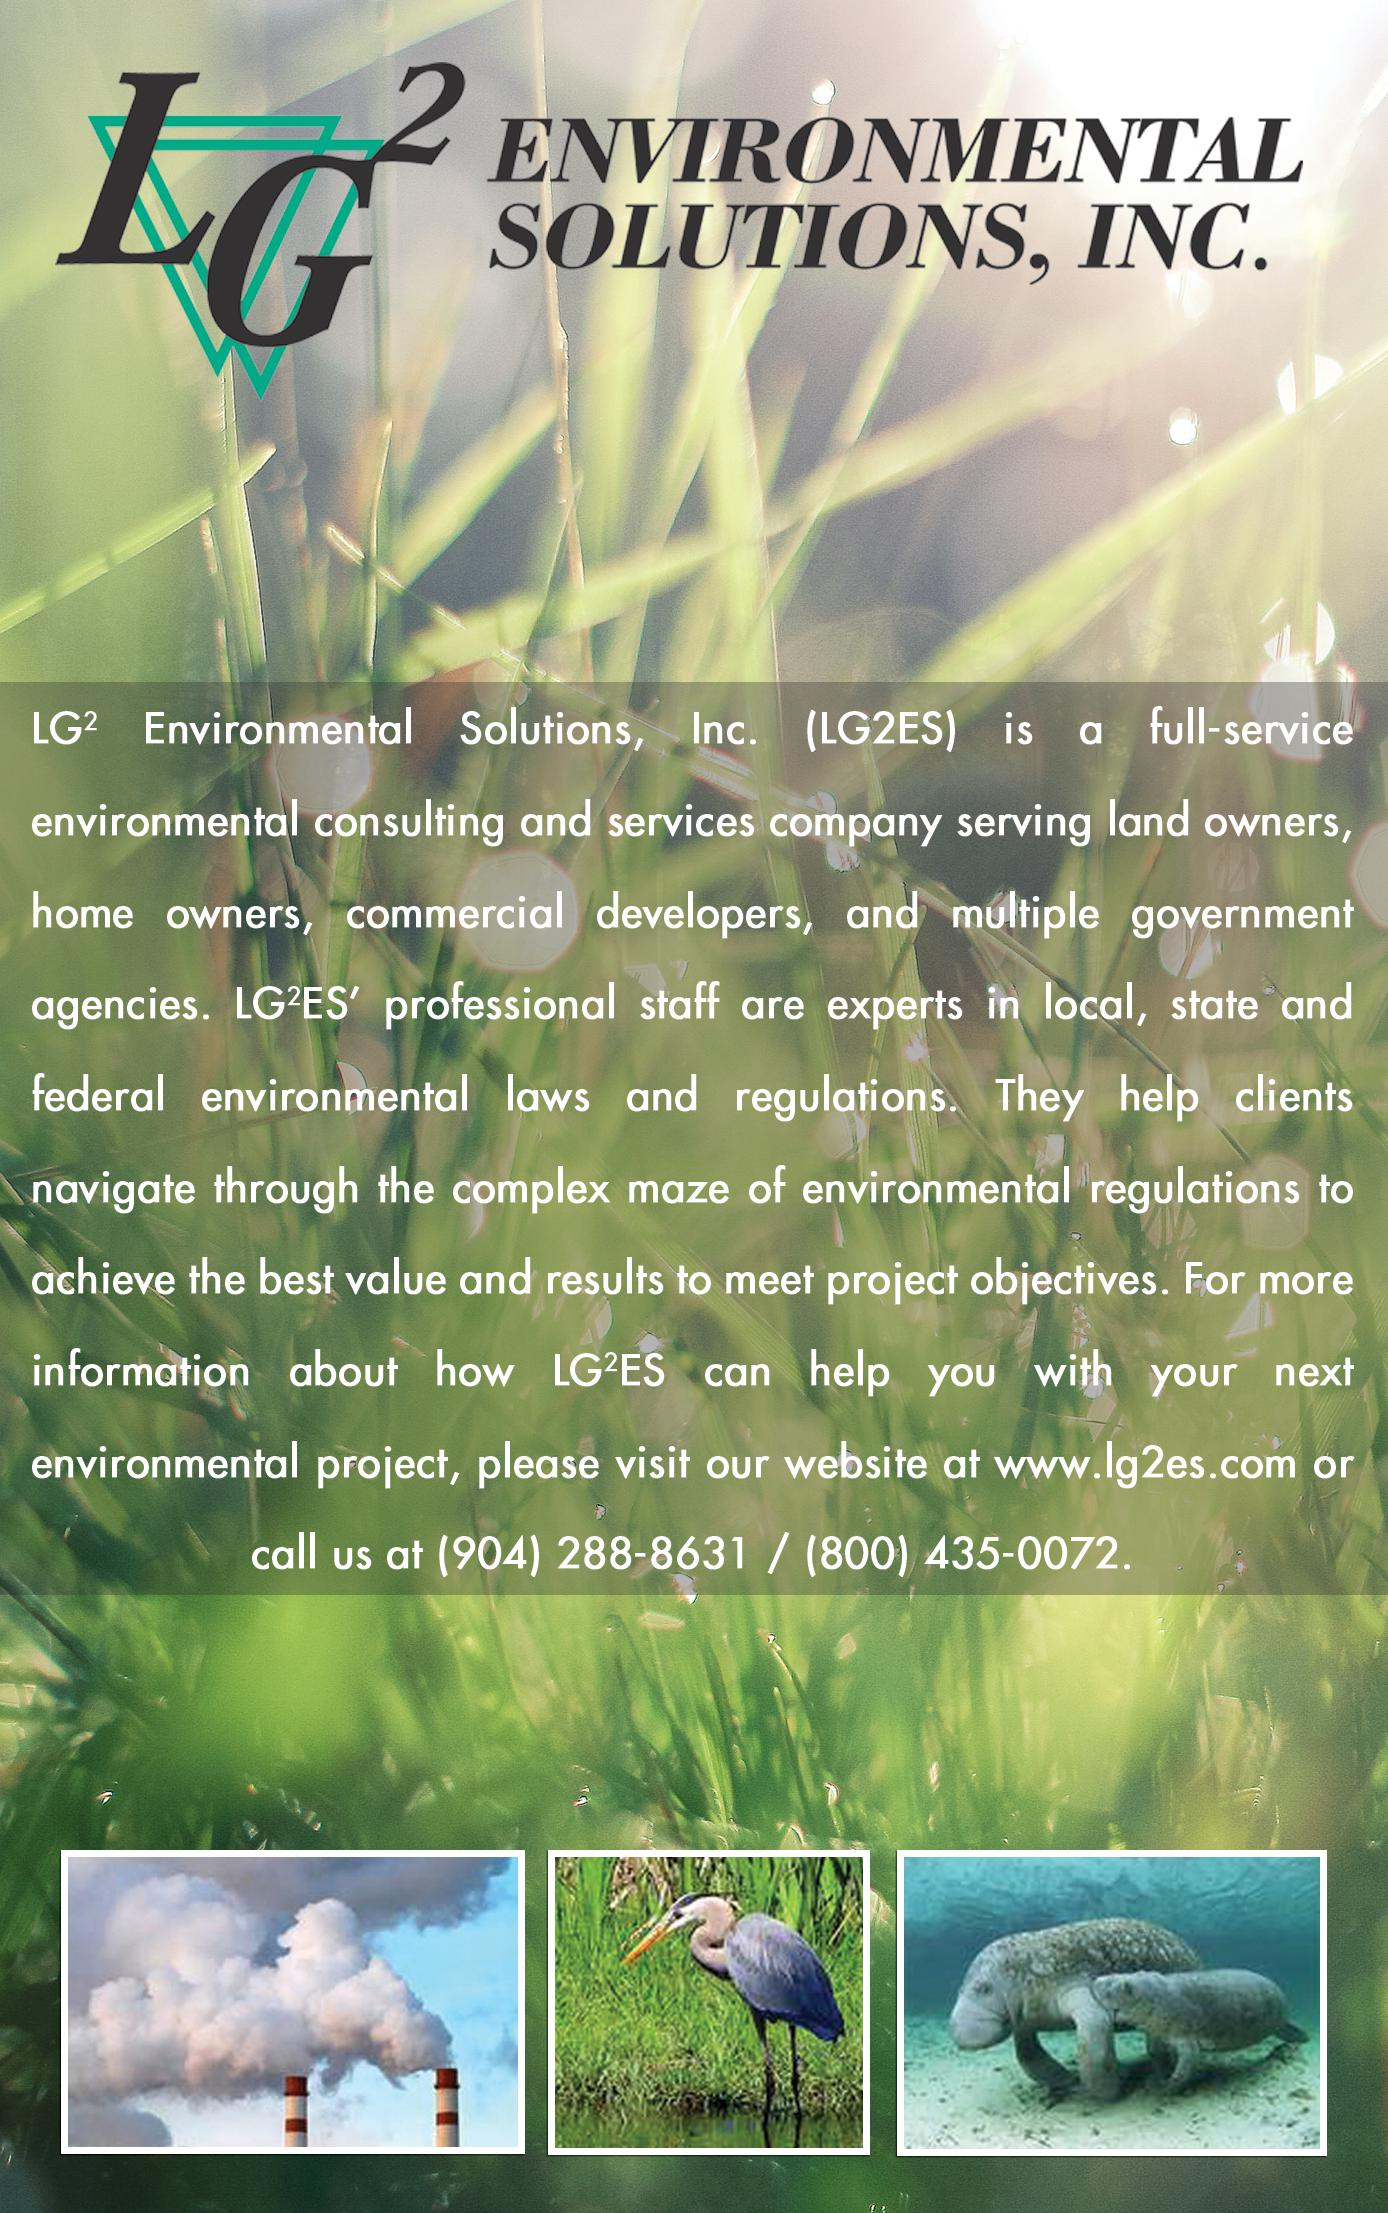 LG2 Environment Solutions, Inc,